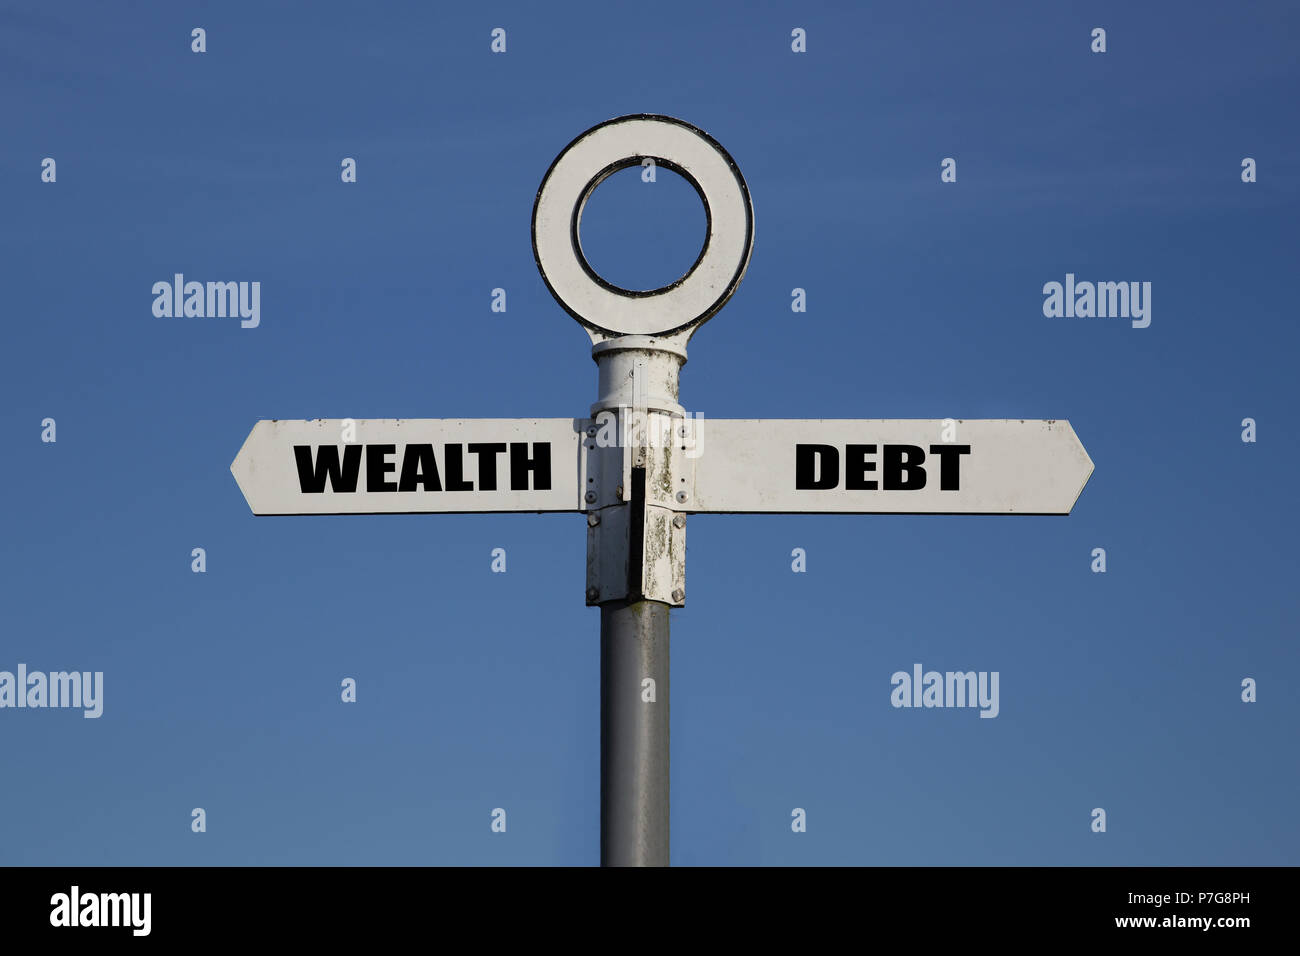 Old road sign with wealth and debt pointing in opposite directions against a blue sky - Stock Image